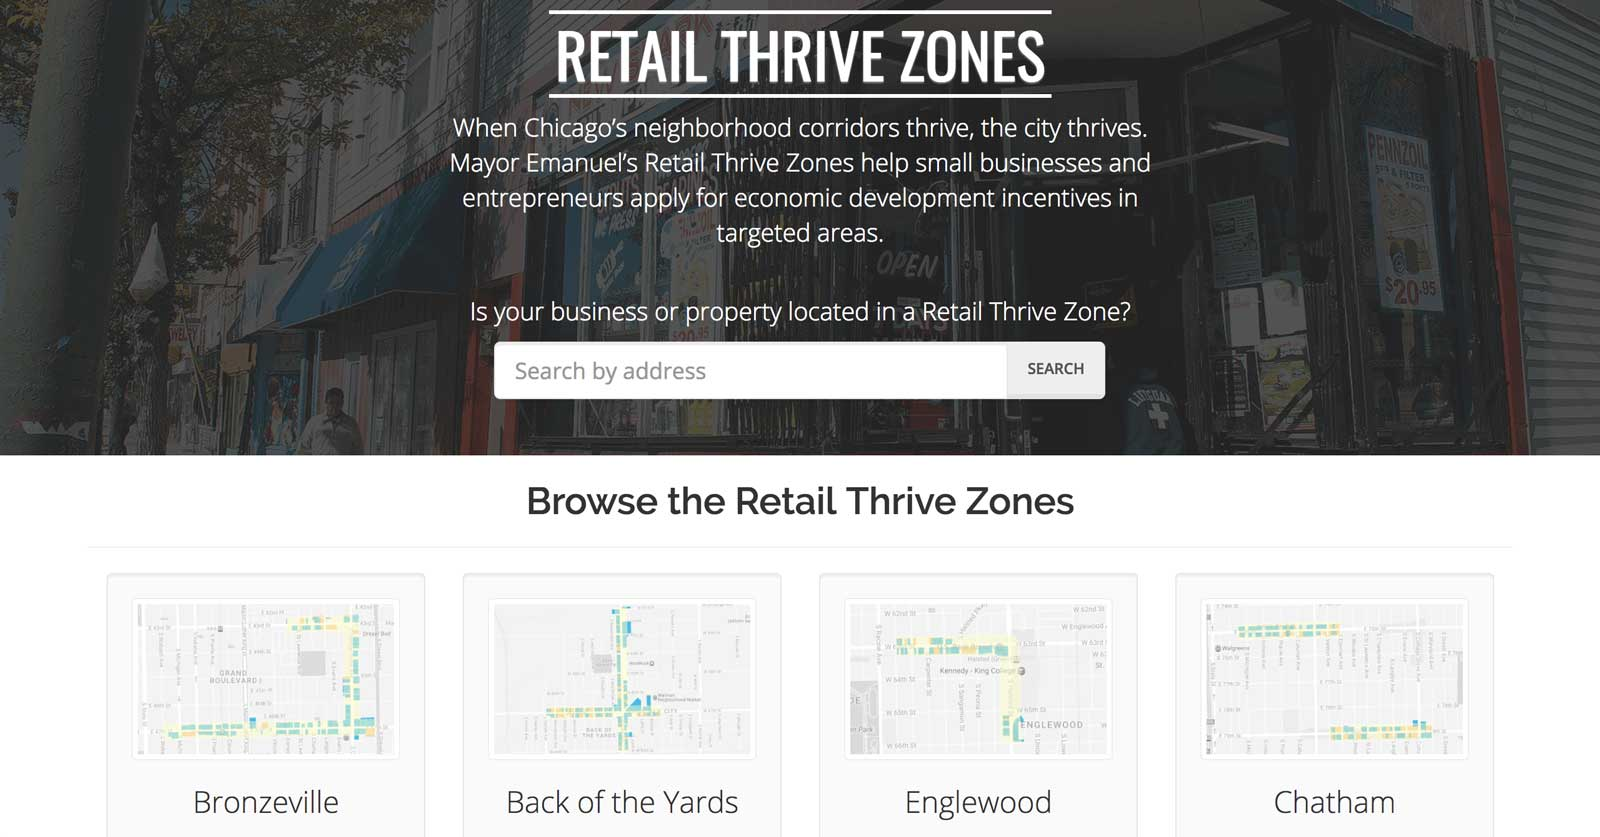 The Retail Thrive Zones home page